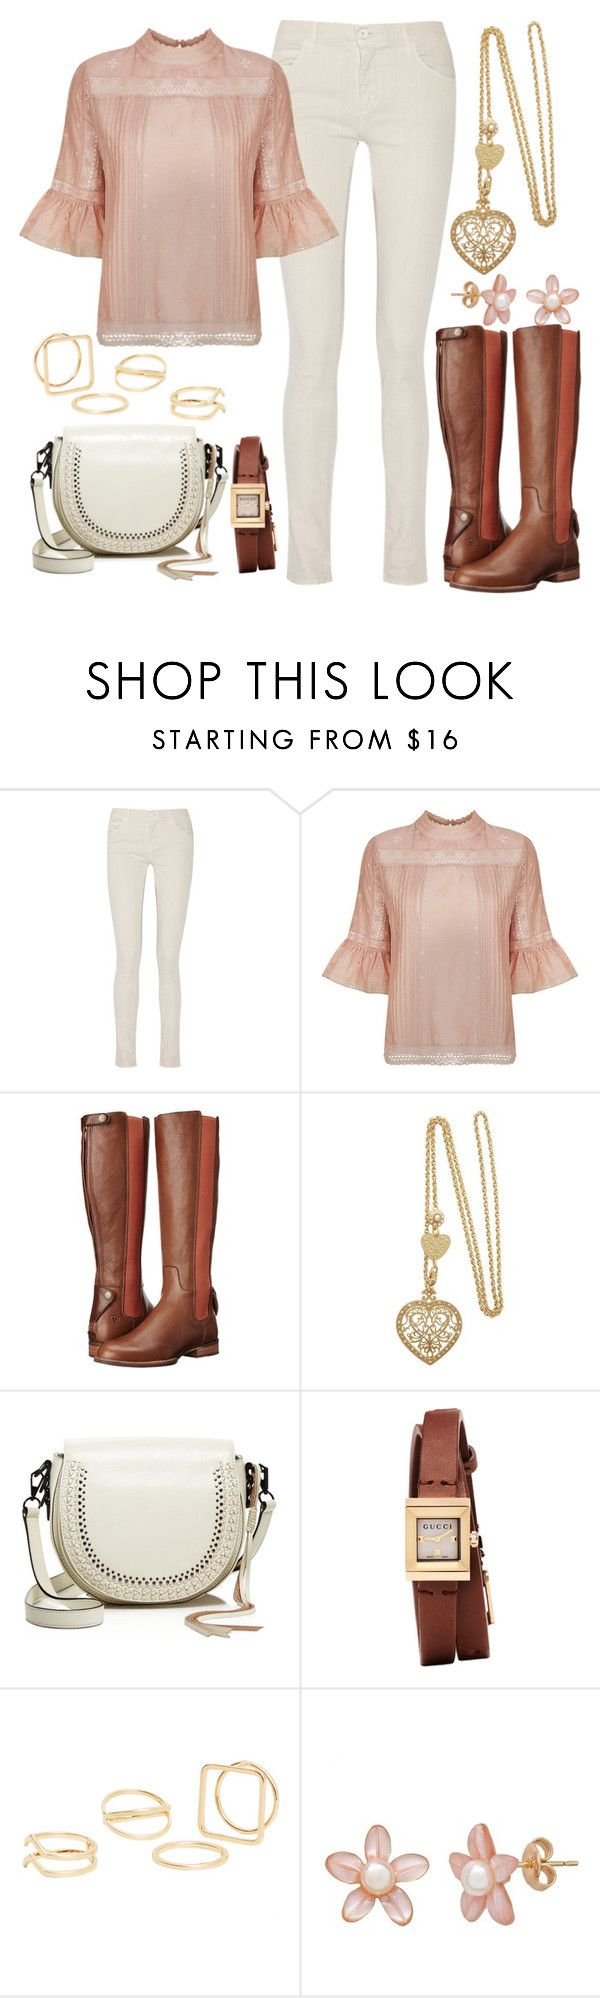 """""""Bell Sleeve Blouse"""" by joslynaurora ❤ liked on Polyvore featuring MM6 Maison Margiela, Ulla Johnson, Ariat, Rebecca Minkoff, Gucci, MANGO, Boots, blouse, goingout and bellsleeve"""